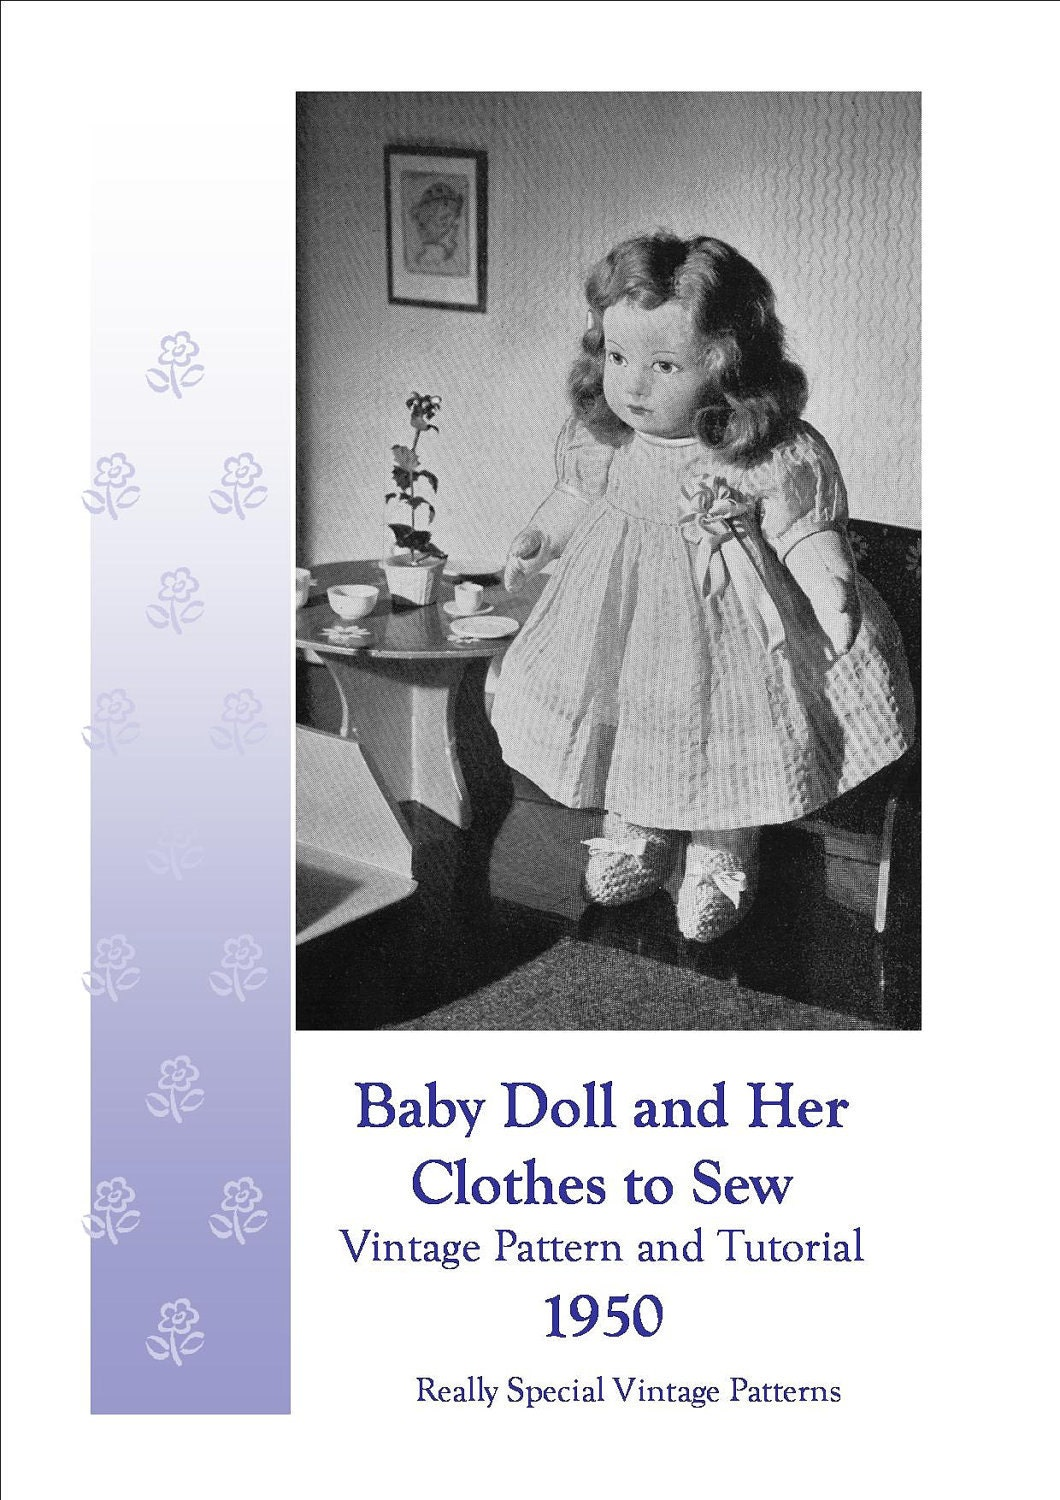 17 Best images about vintage baby clothes on Pinterest ...  |1950 Baby Stuff